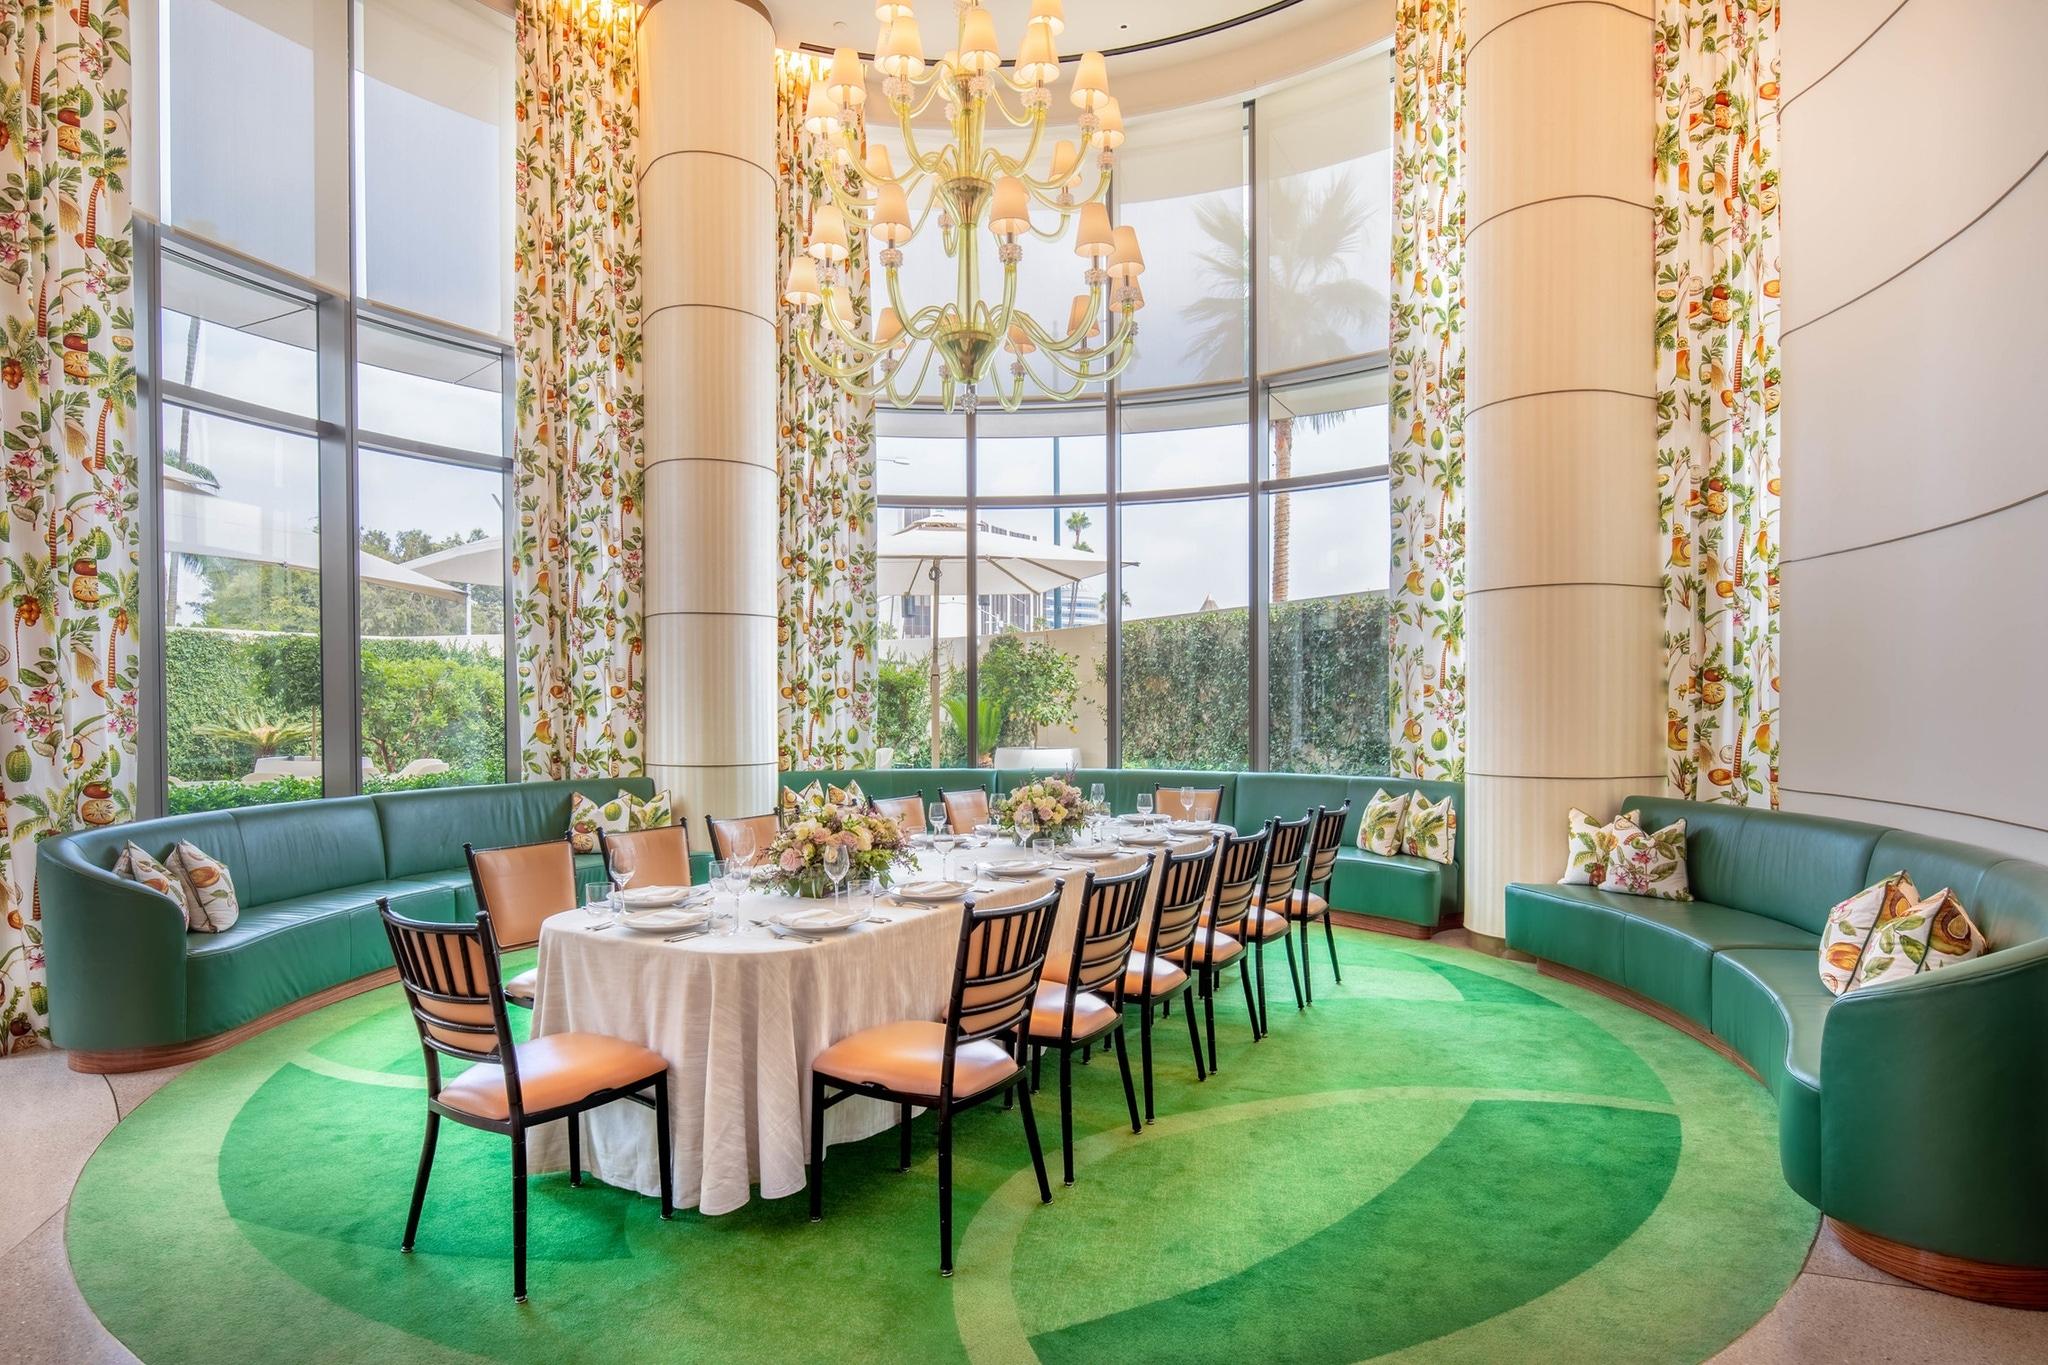 Jean- Georges Sway Private Dining Room at the Waldorf Astoria Beverly Hills